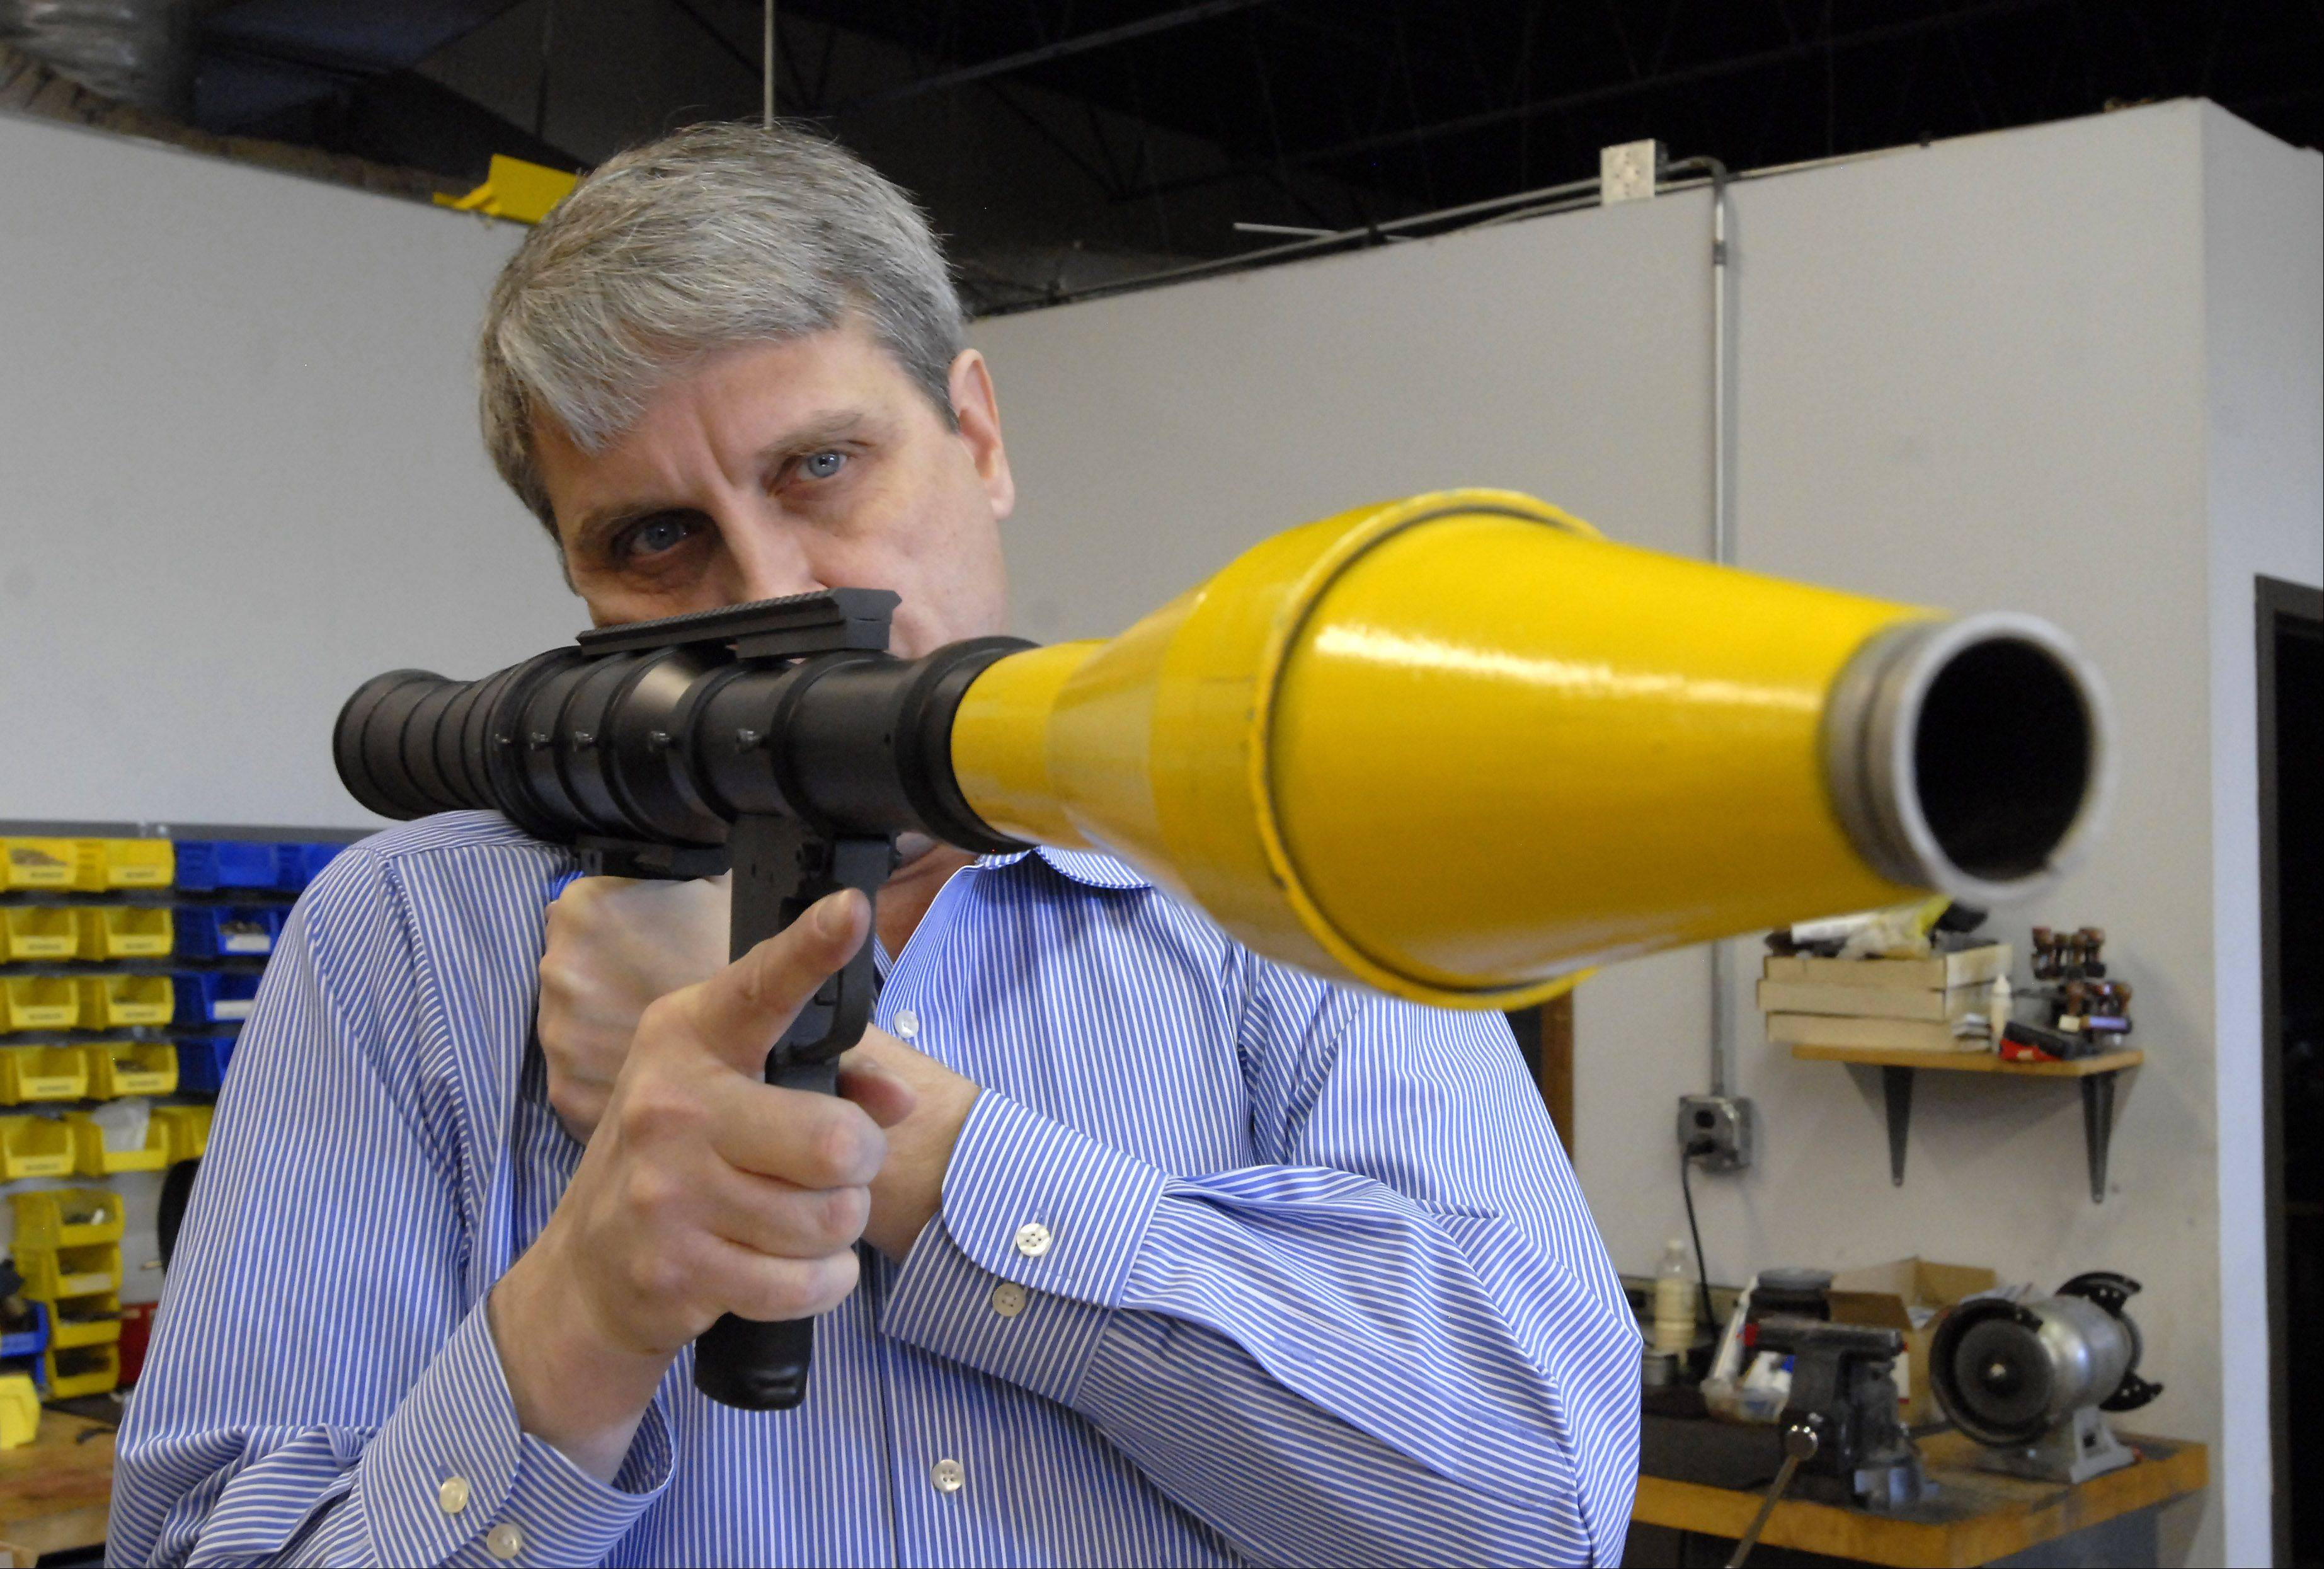 Bob Walter, president of Airtronic USA, holds an RPG7-USA rocket propelled grenade launcher that is manufactured in the Elk Grove Village facility.